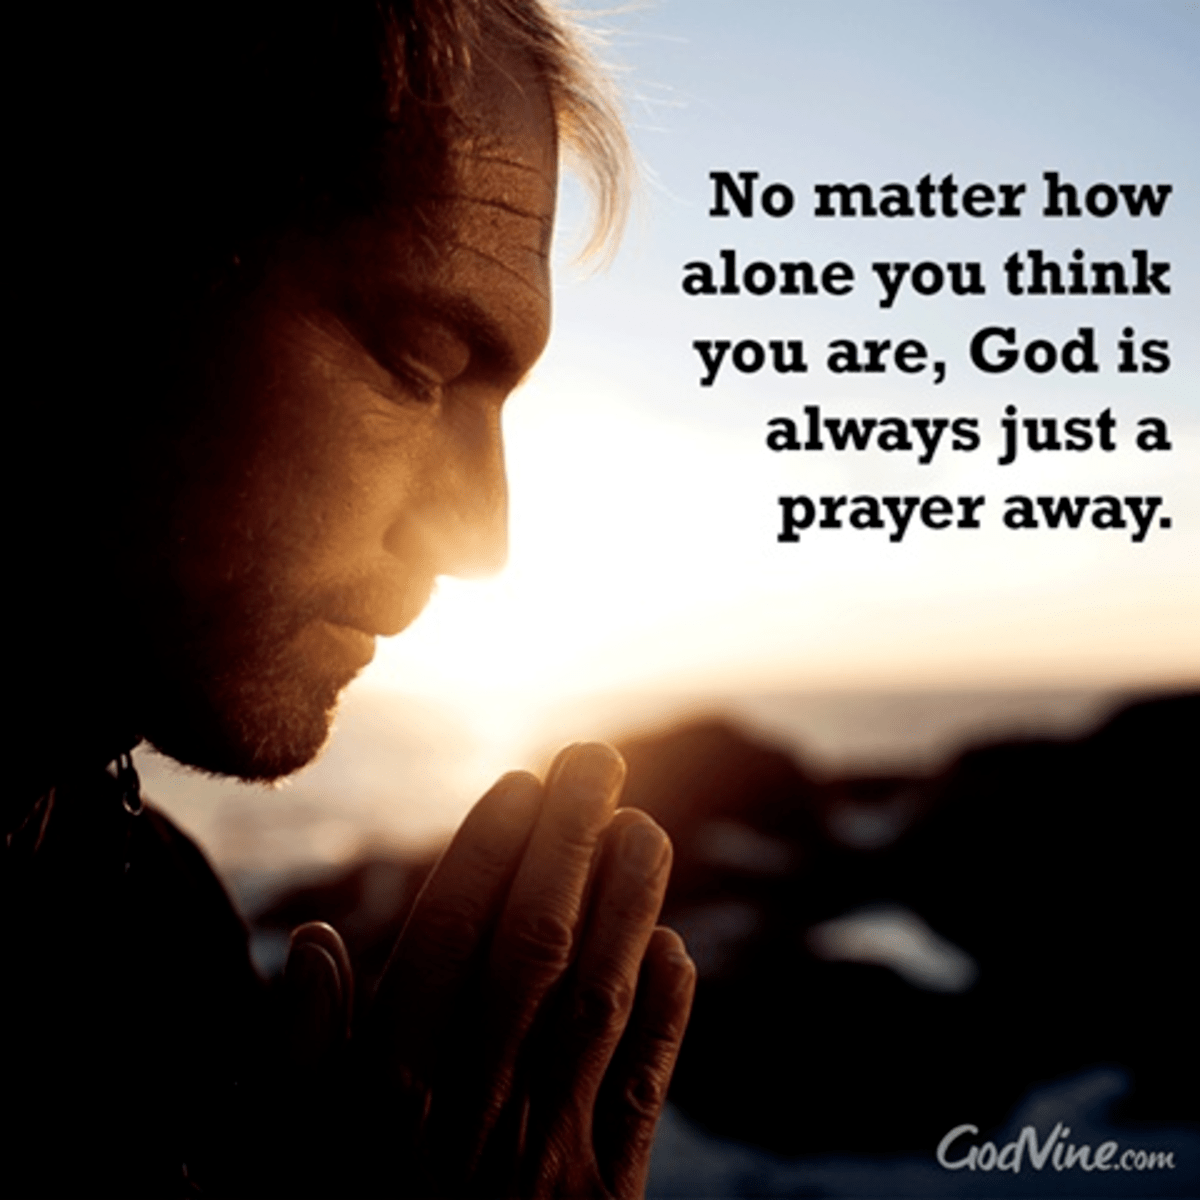 A Prayer Away